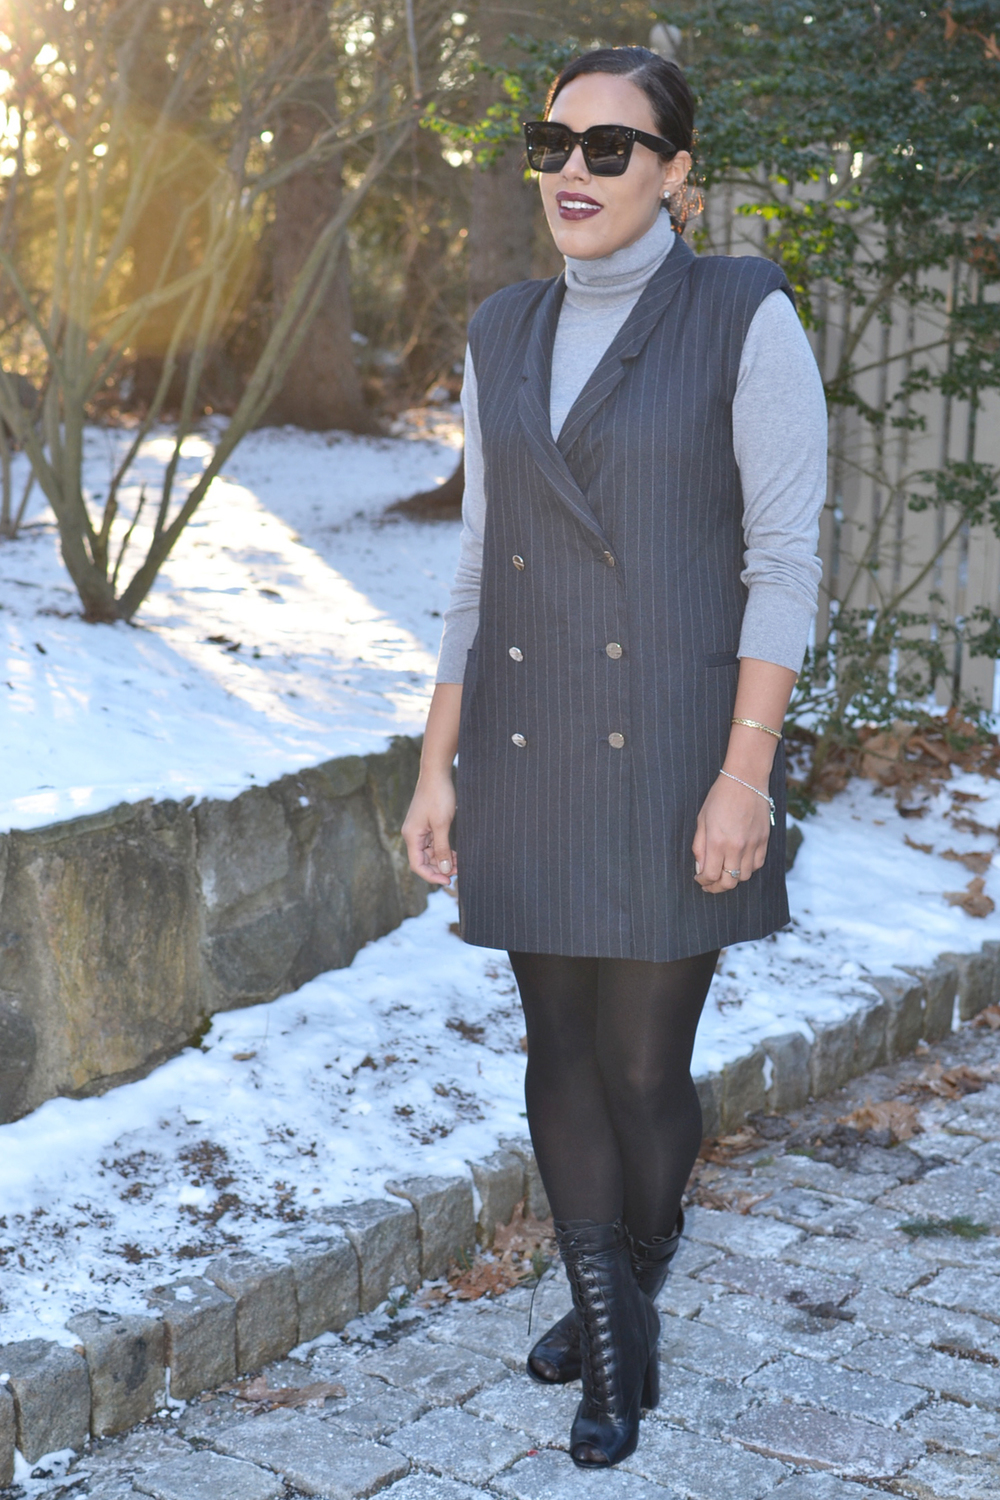 how-to-winterize-dresses-wear-dresses-in-the-winter-layering-river-island-tuxedo-dress-steve-madden-boots.jpg